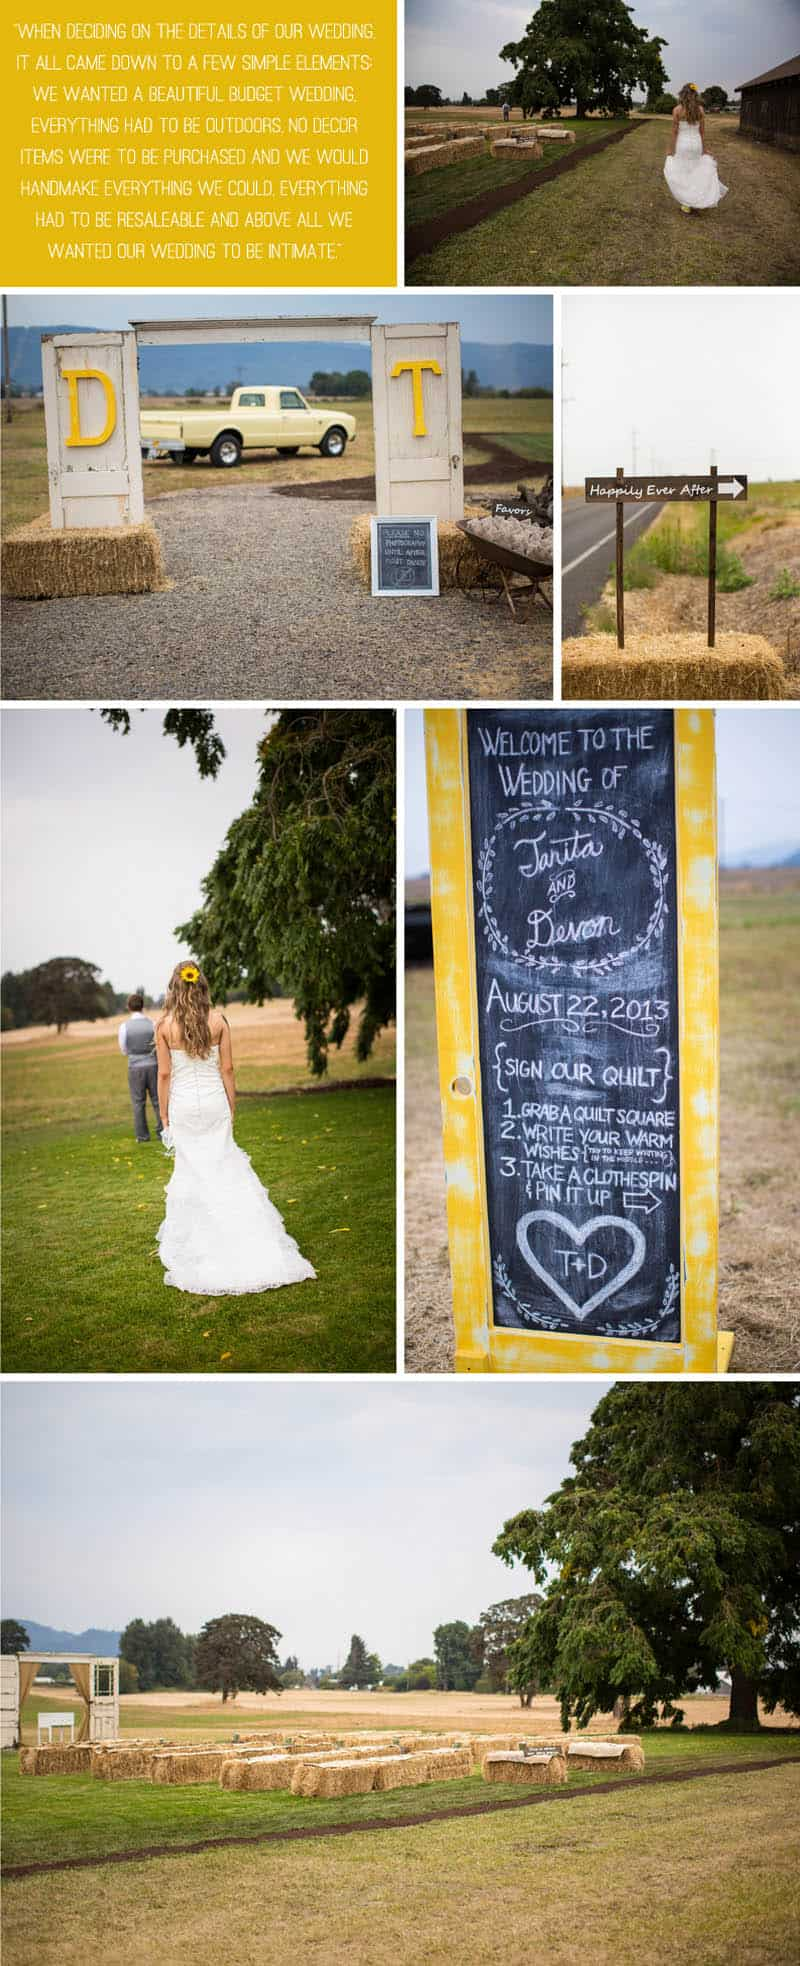 A Rustic Country Wedding for Just £1500 1